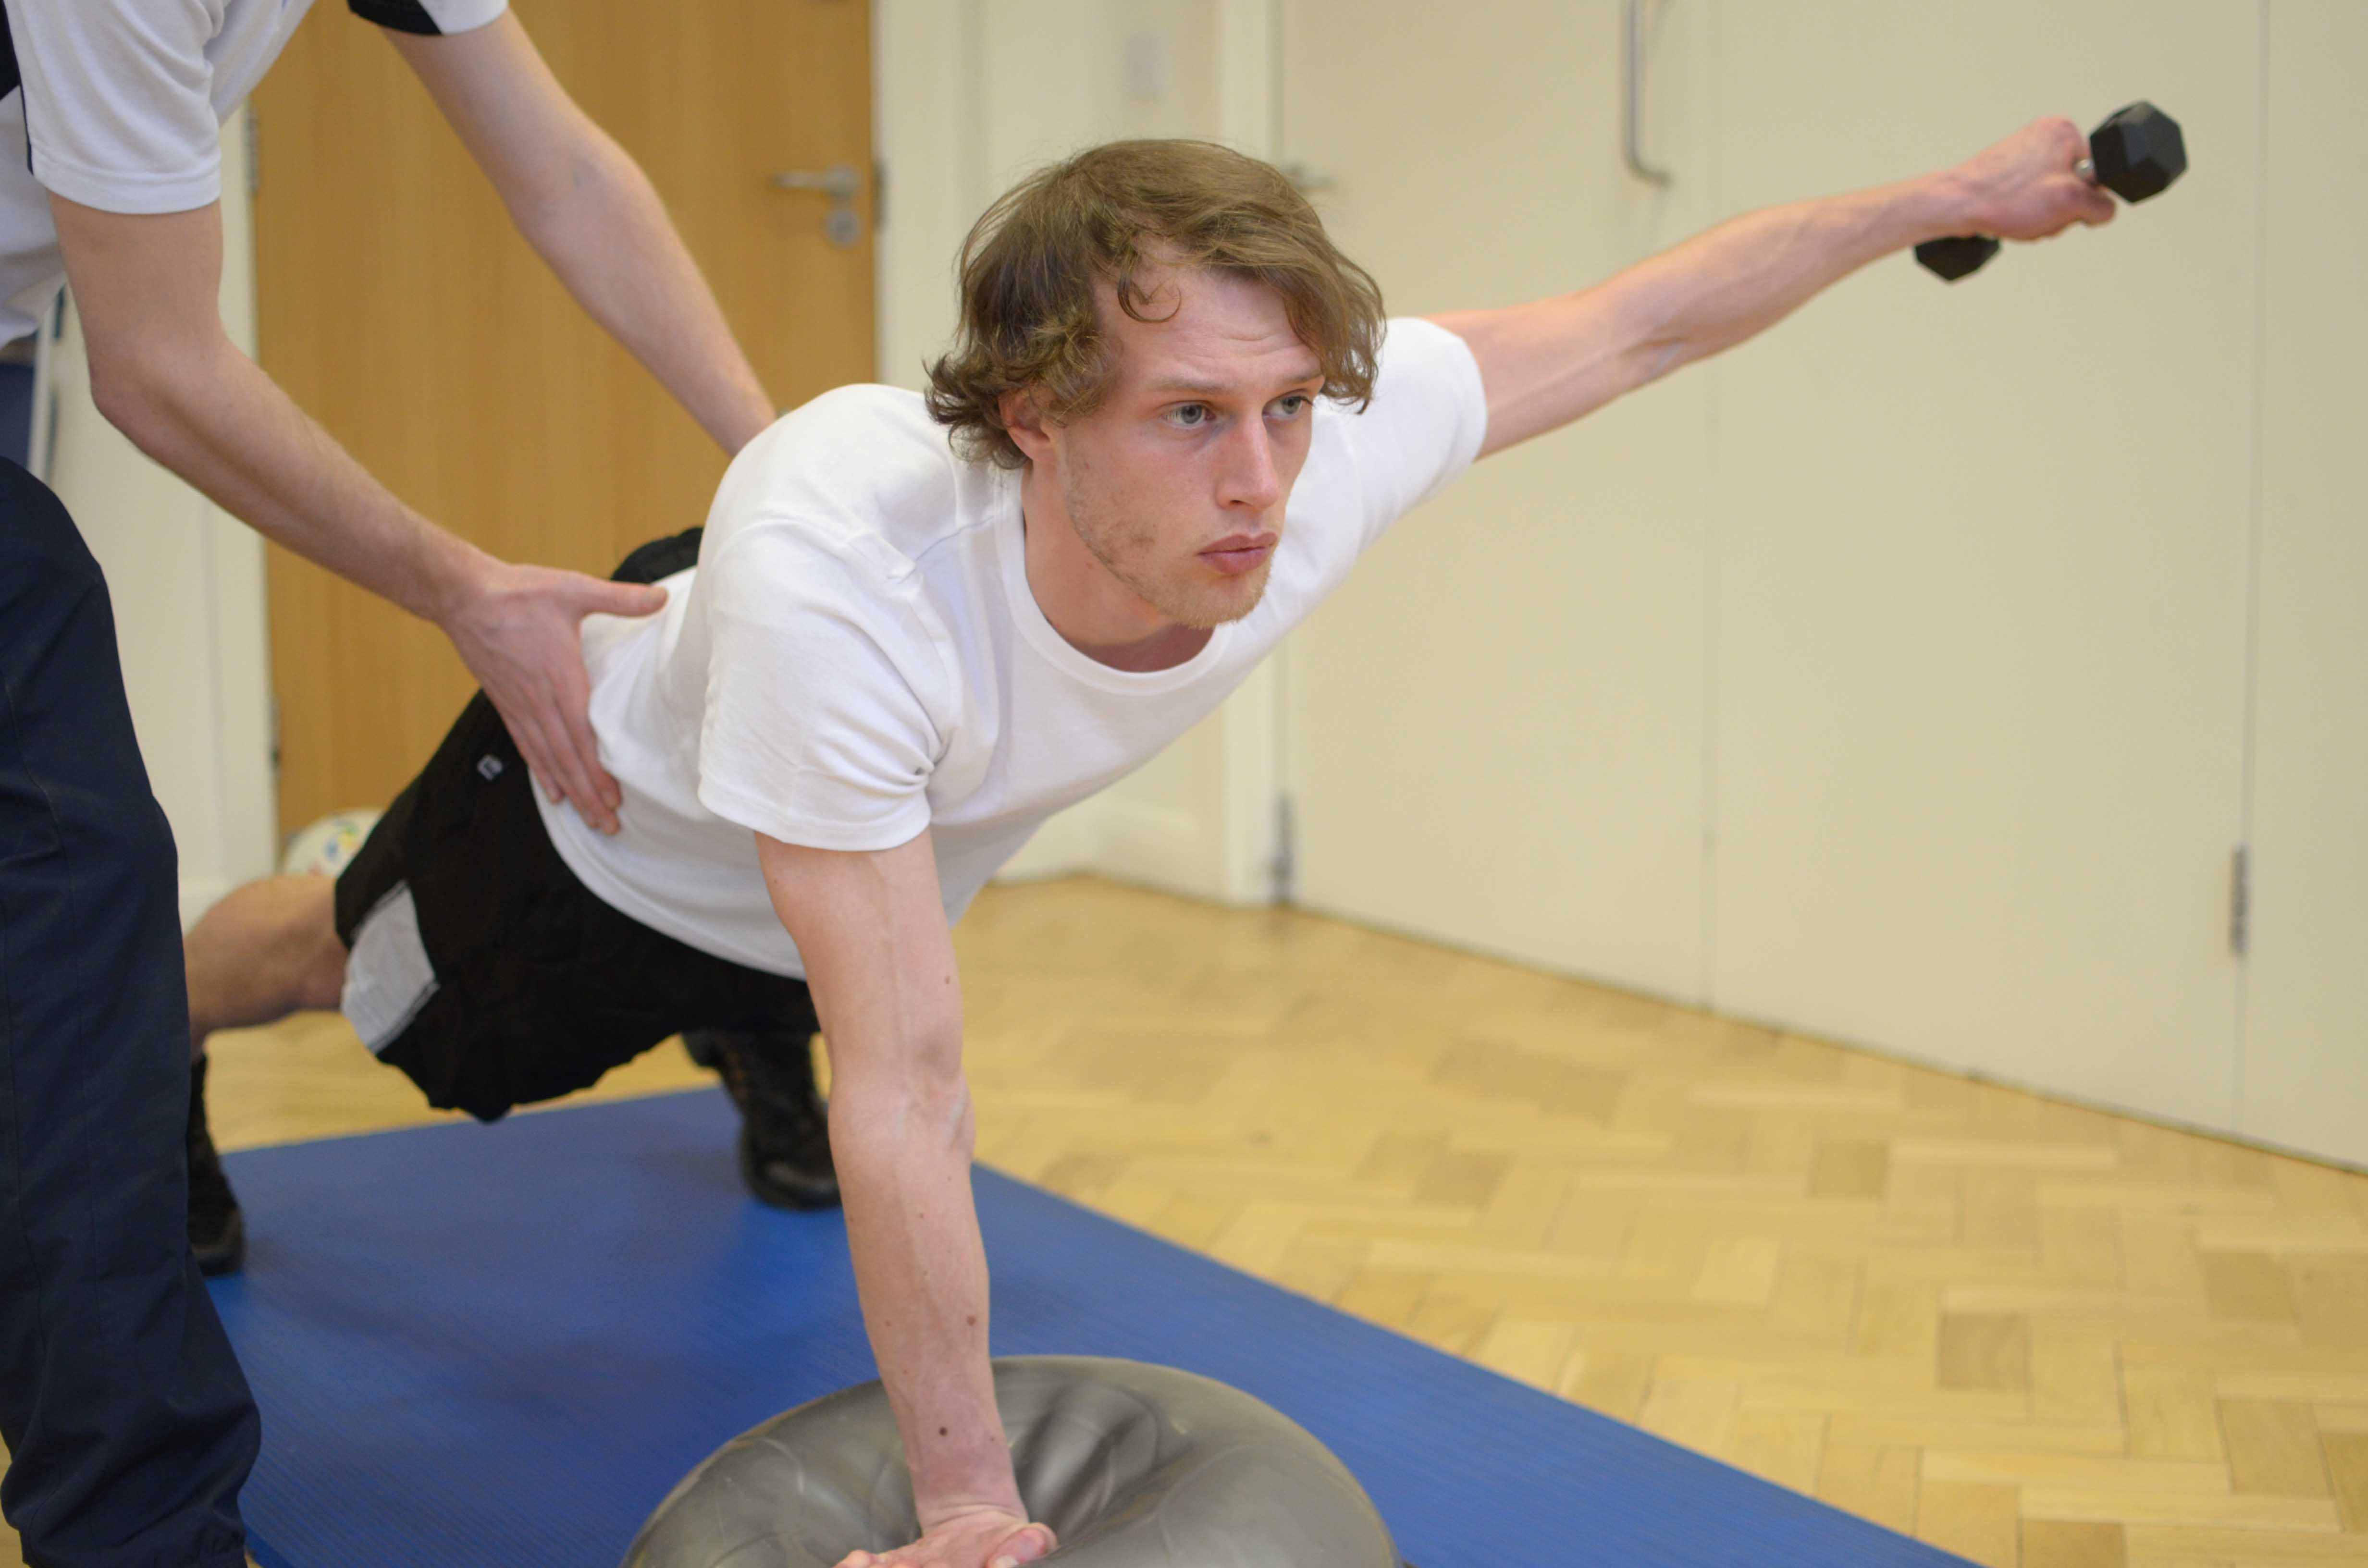 Dynamic balance and co-ordination exercises assisted by an experienced Physiotherapist